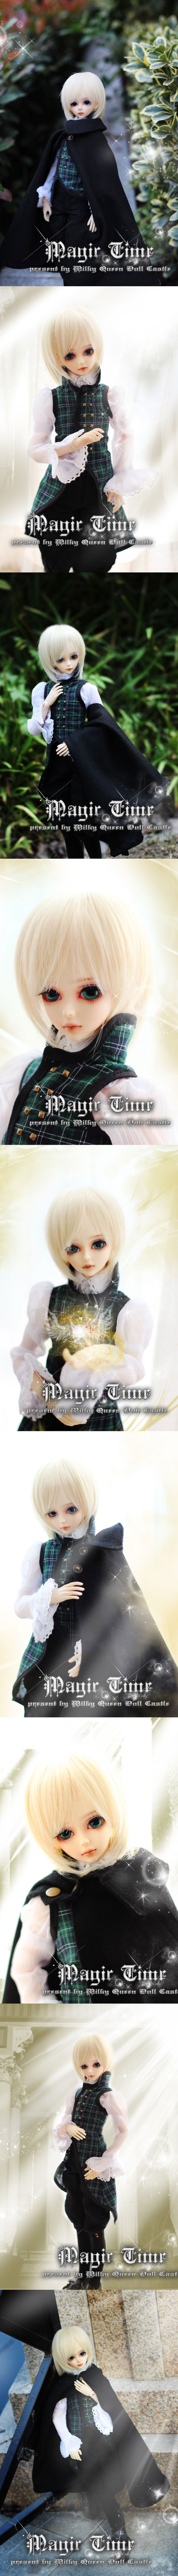 BJD Alfred Boy 43cm Boll-jointed doll